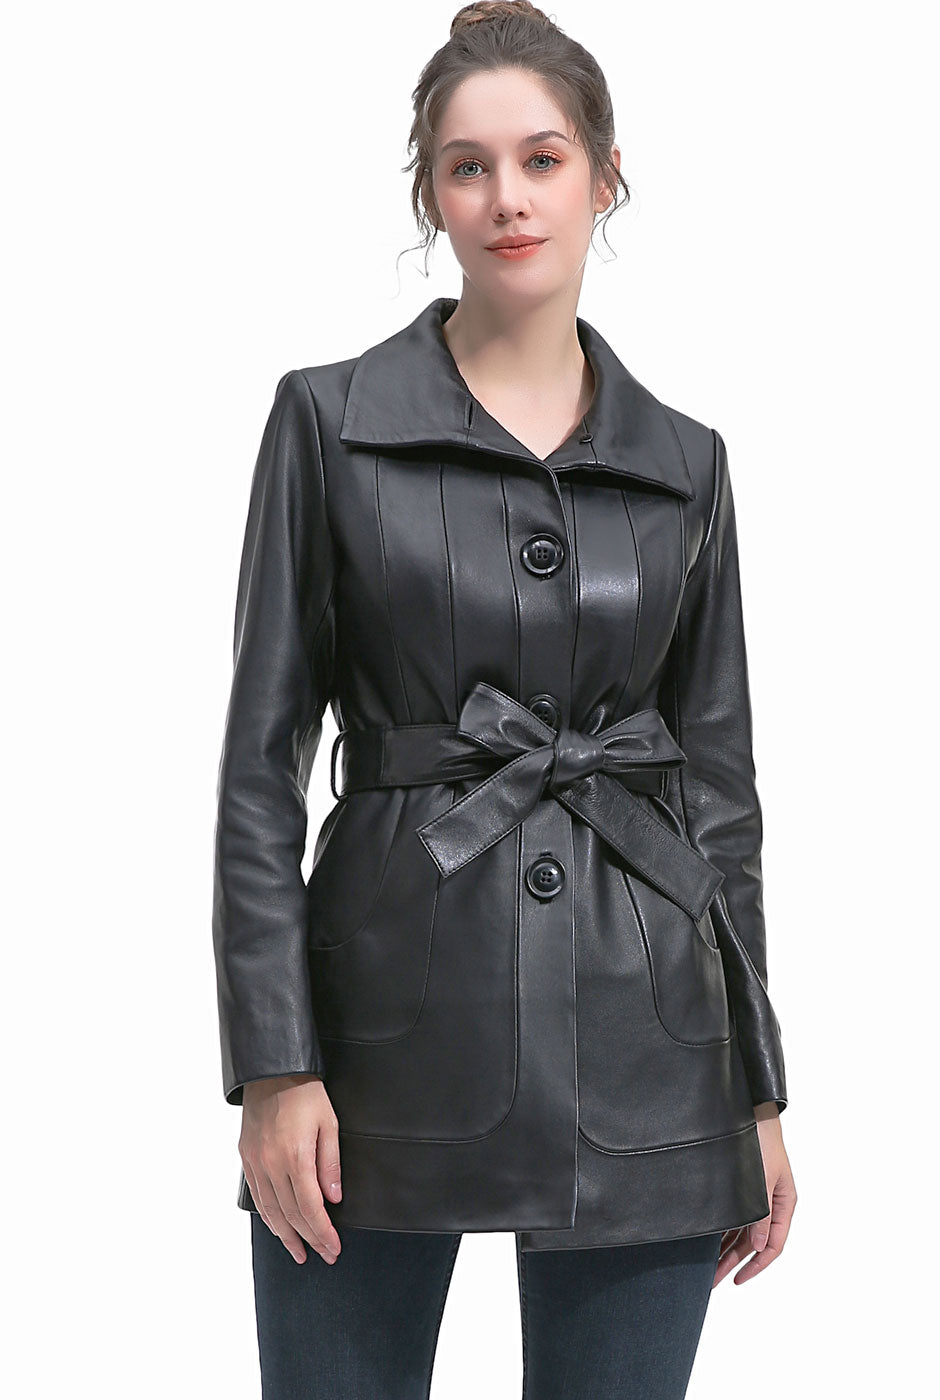 BGSD Women's New Zealand Lambskin Leather Coat - Short